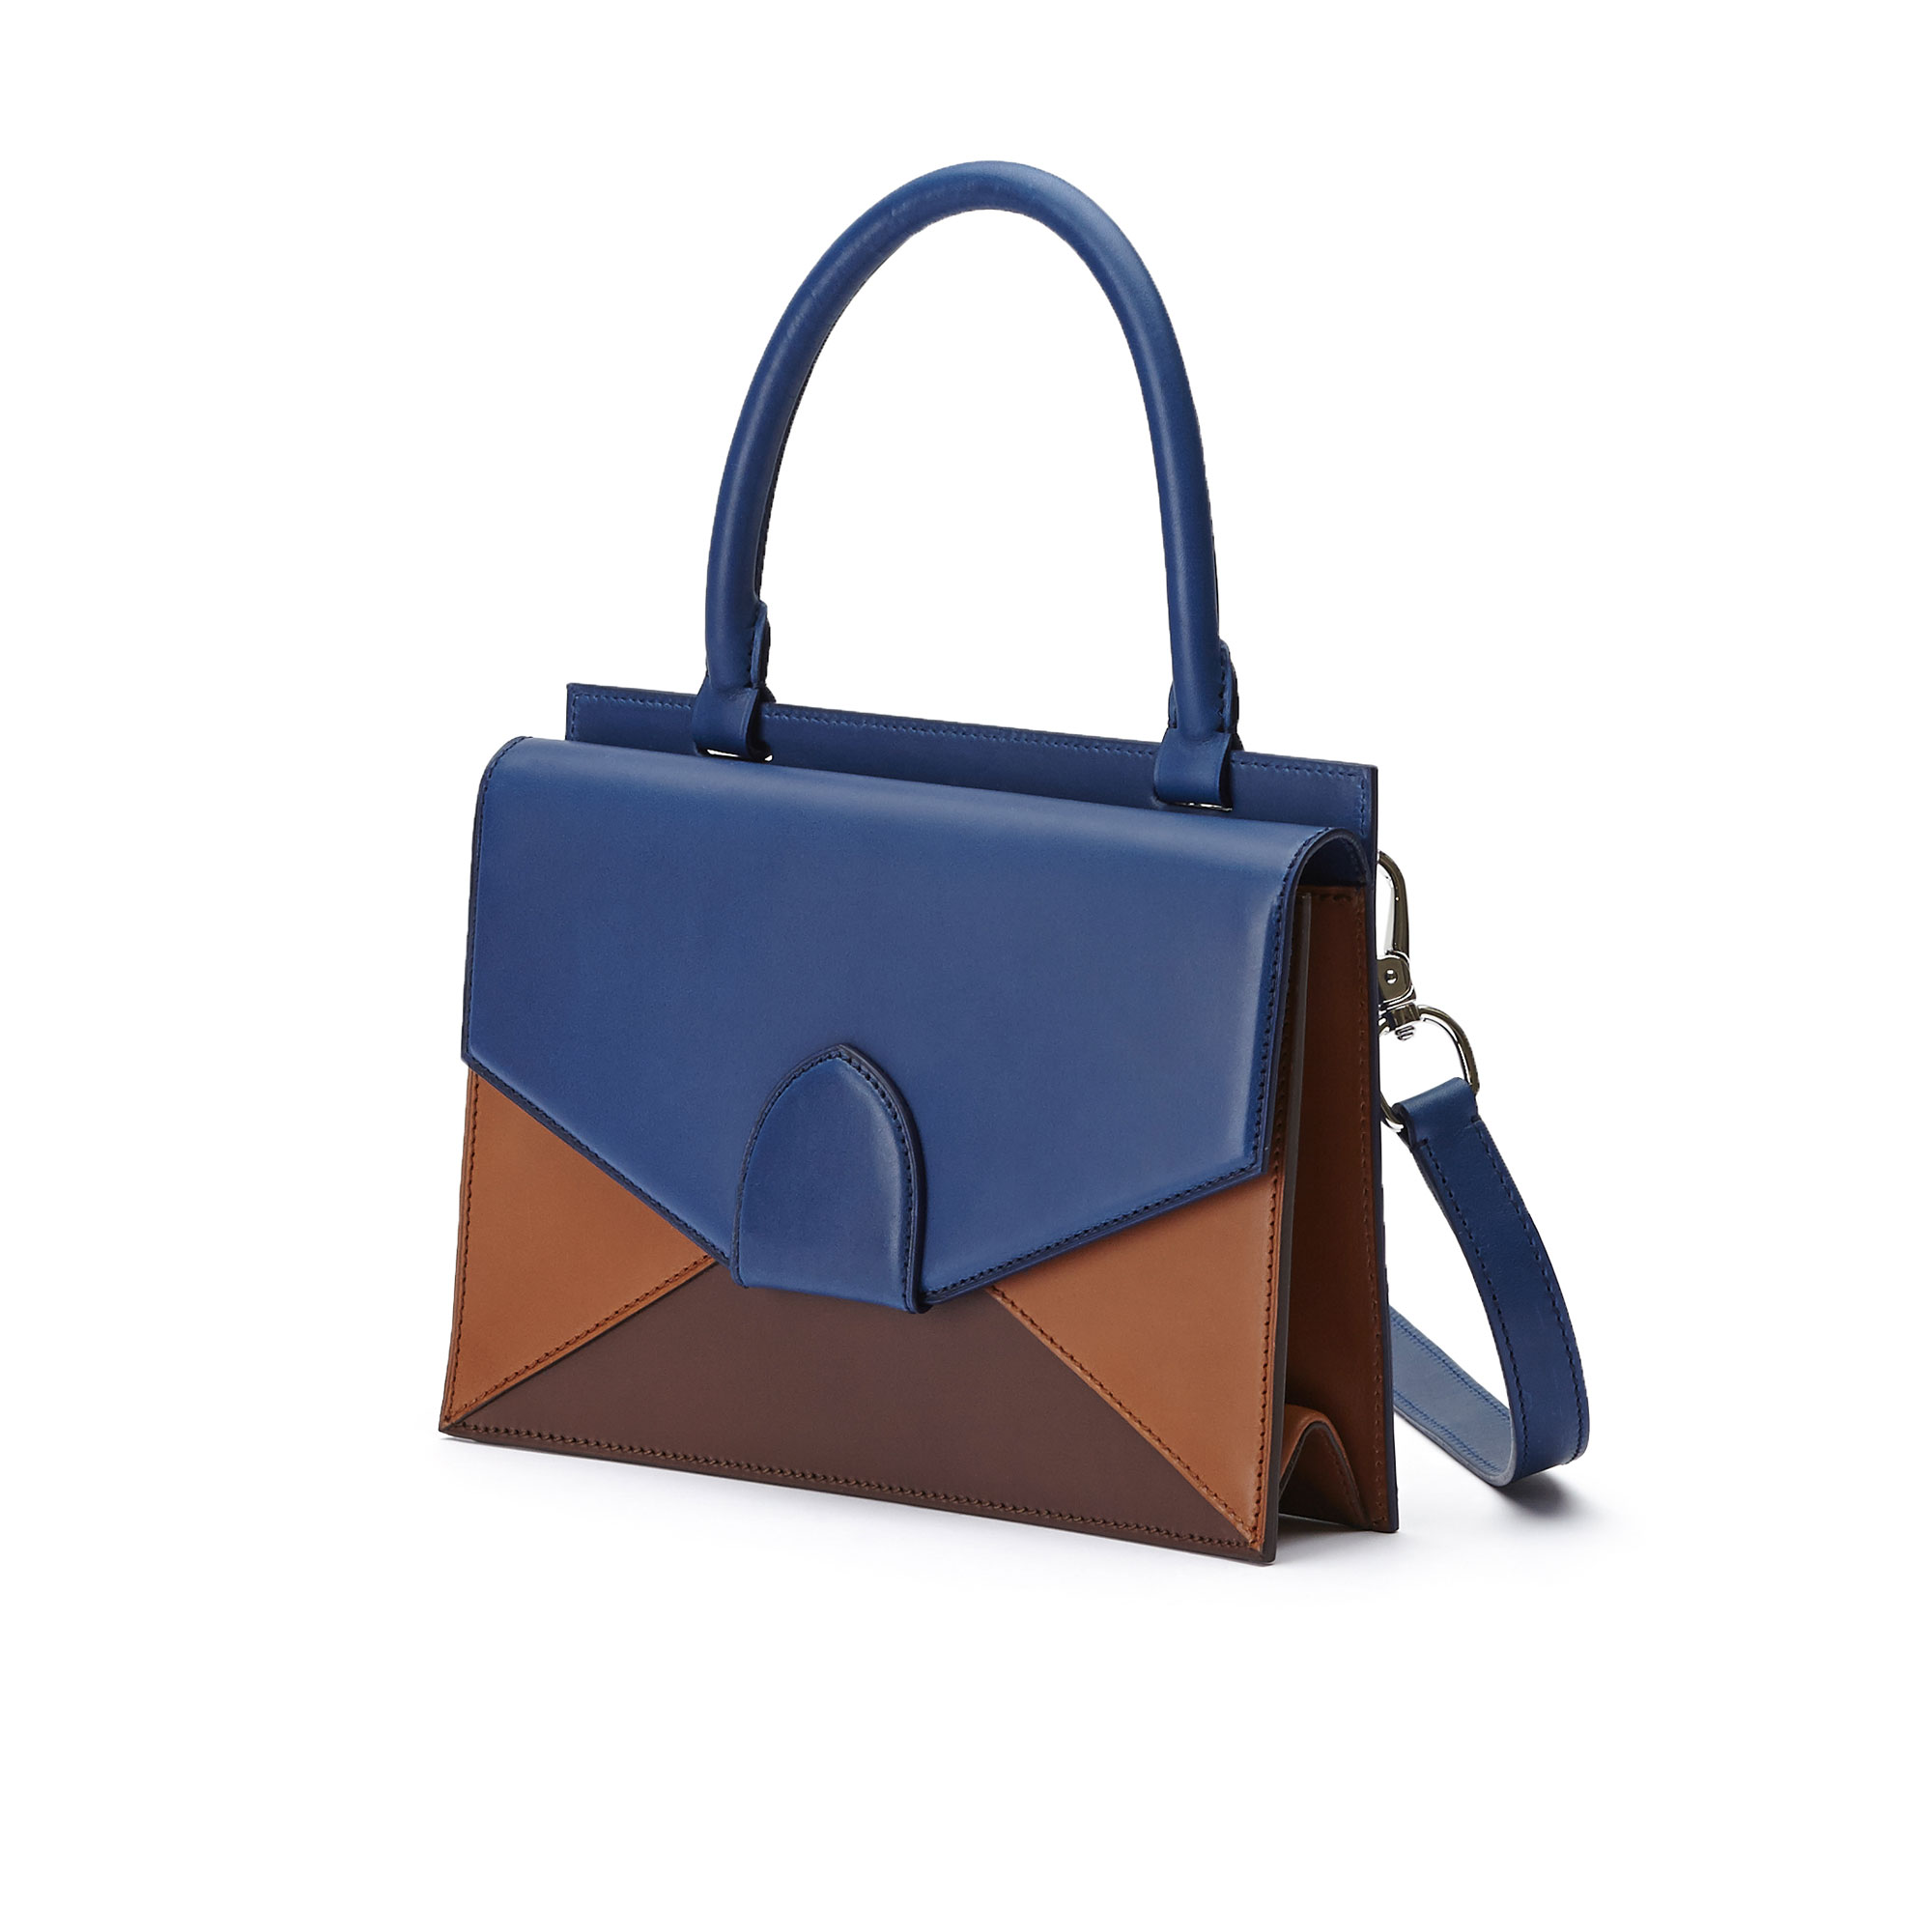 The black, blue and terrabruciata french calf Medium Dafne bag by Bertoni 1949 02